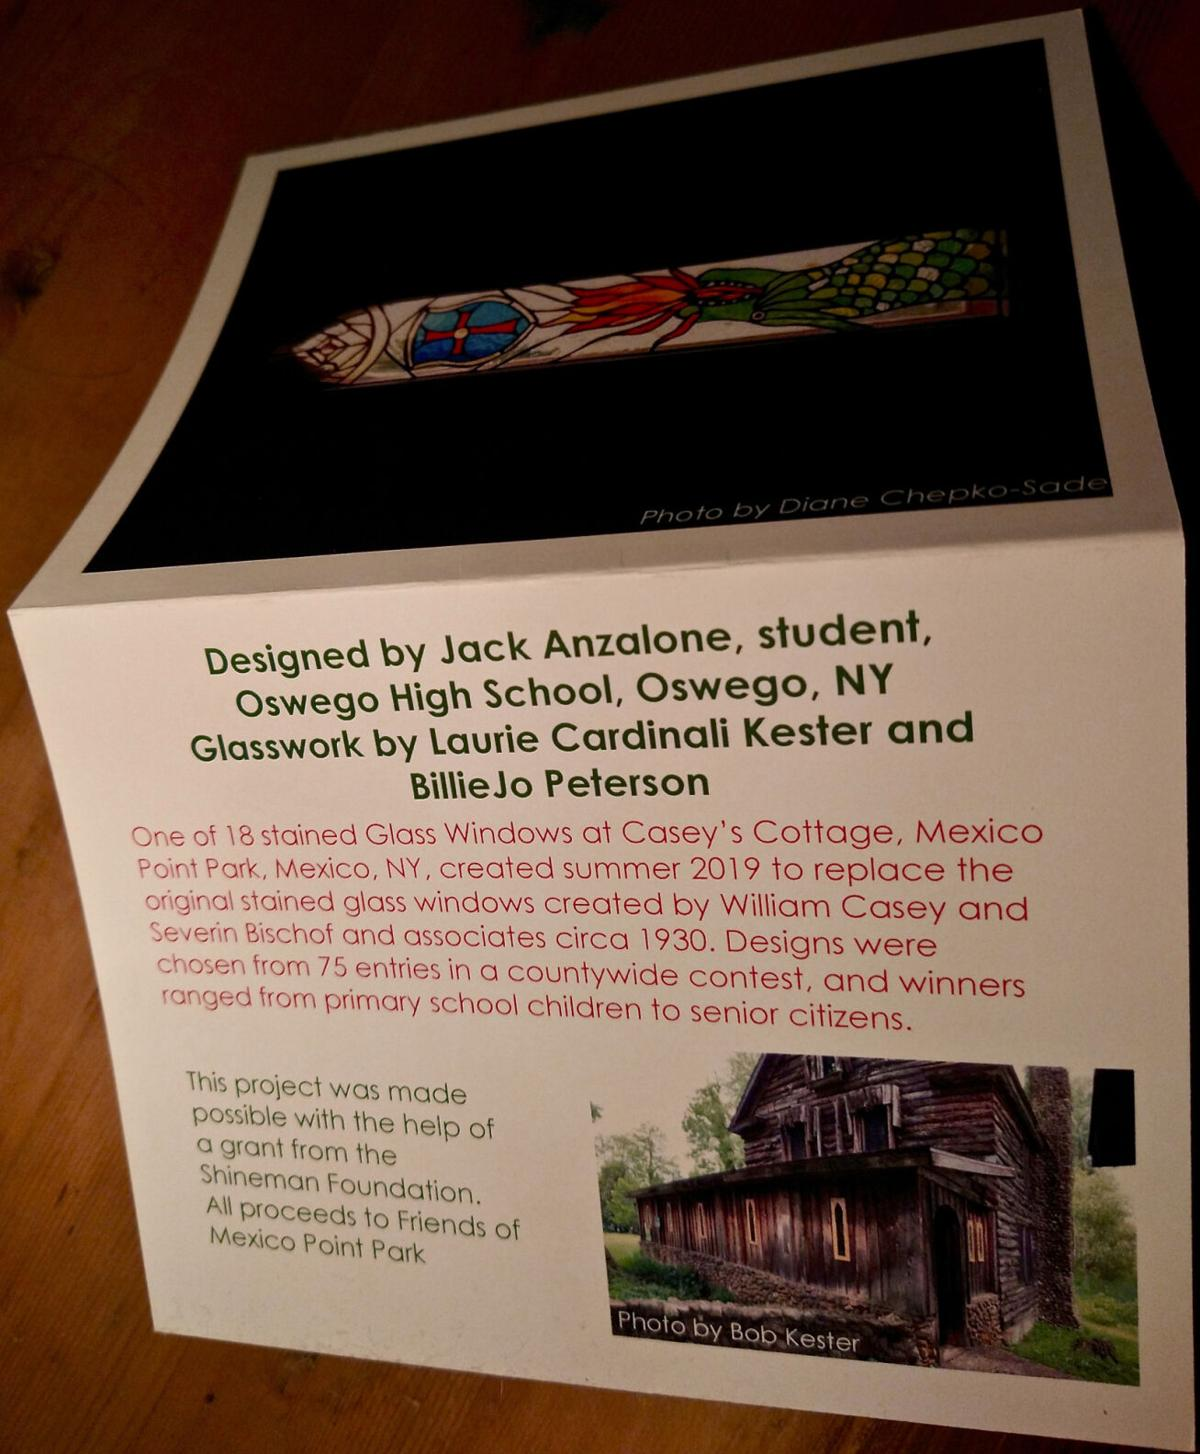 Friends of Mexico Point Park feature stained-glass window note cards to light up Casey's Cottage